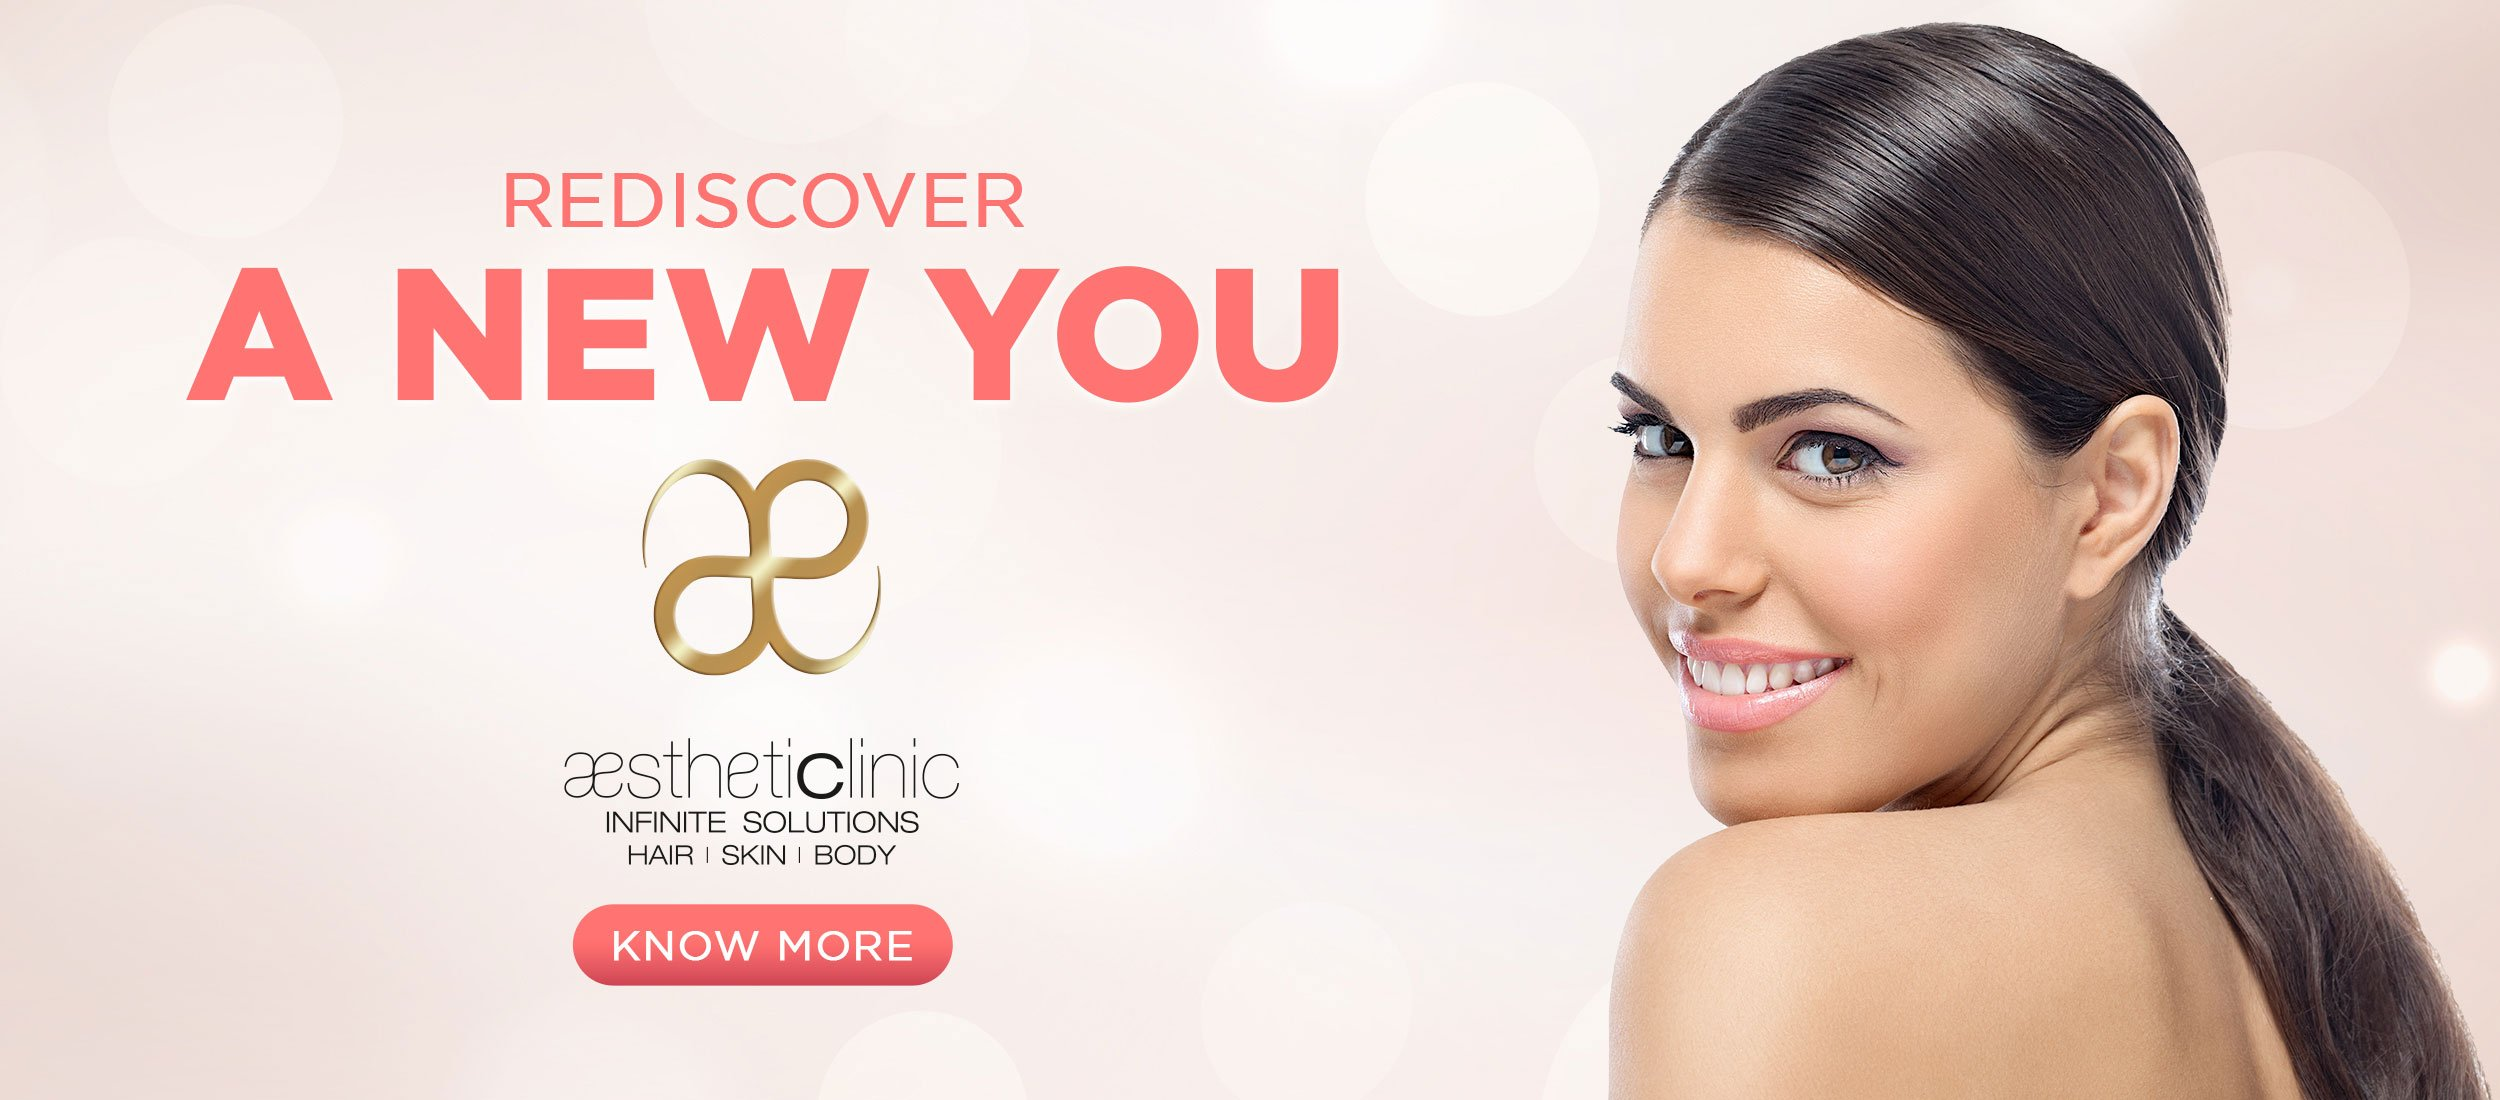 Kokilaben Dhirubhai Ambani Hospital - Rediscover A New You